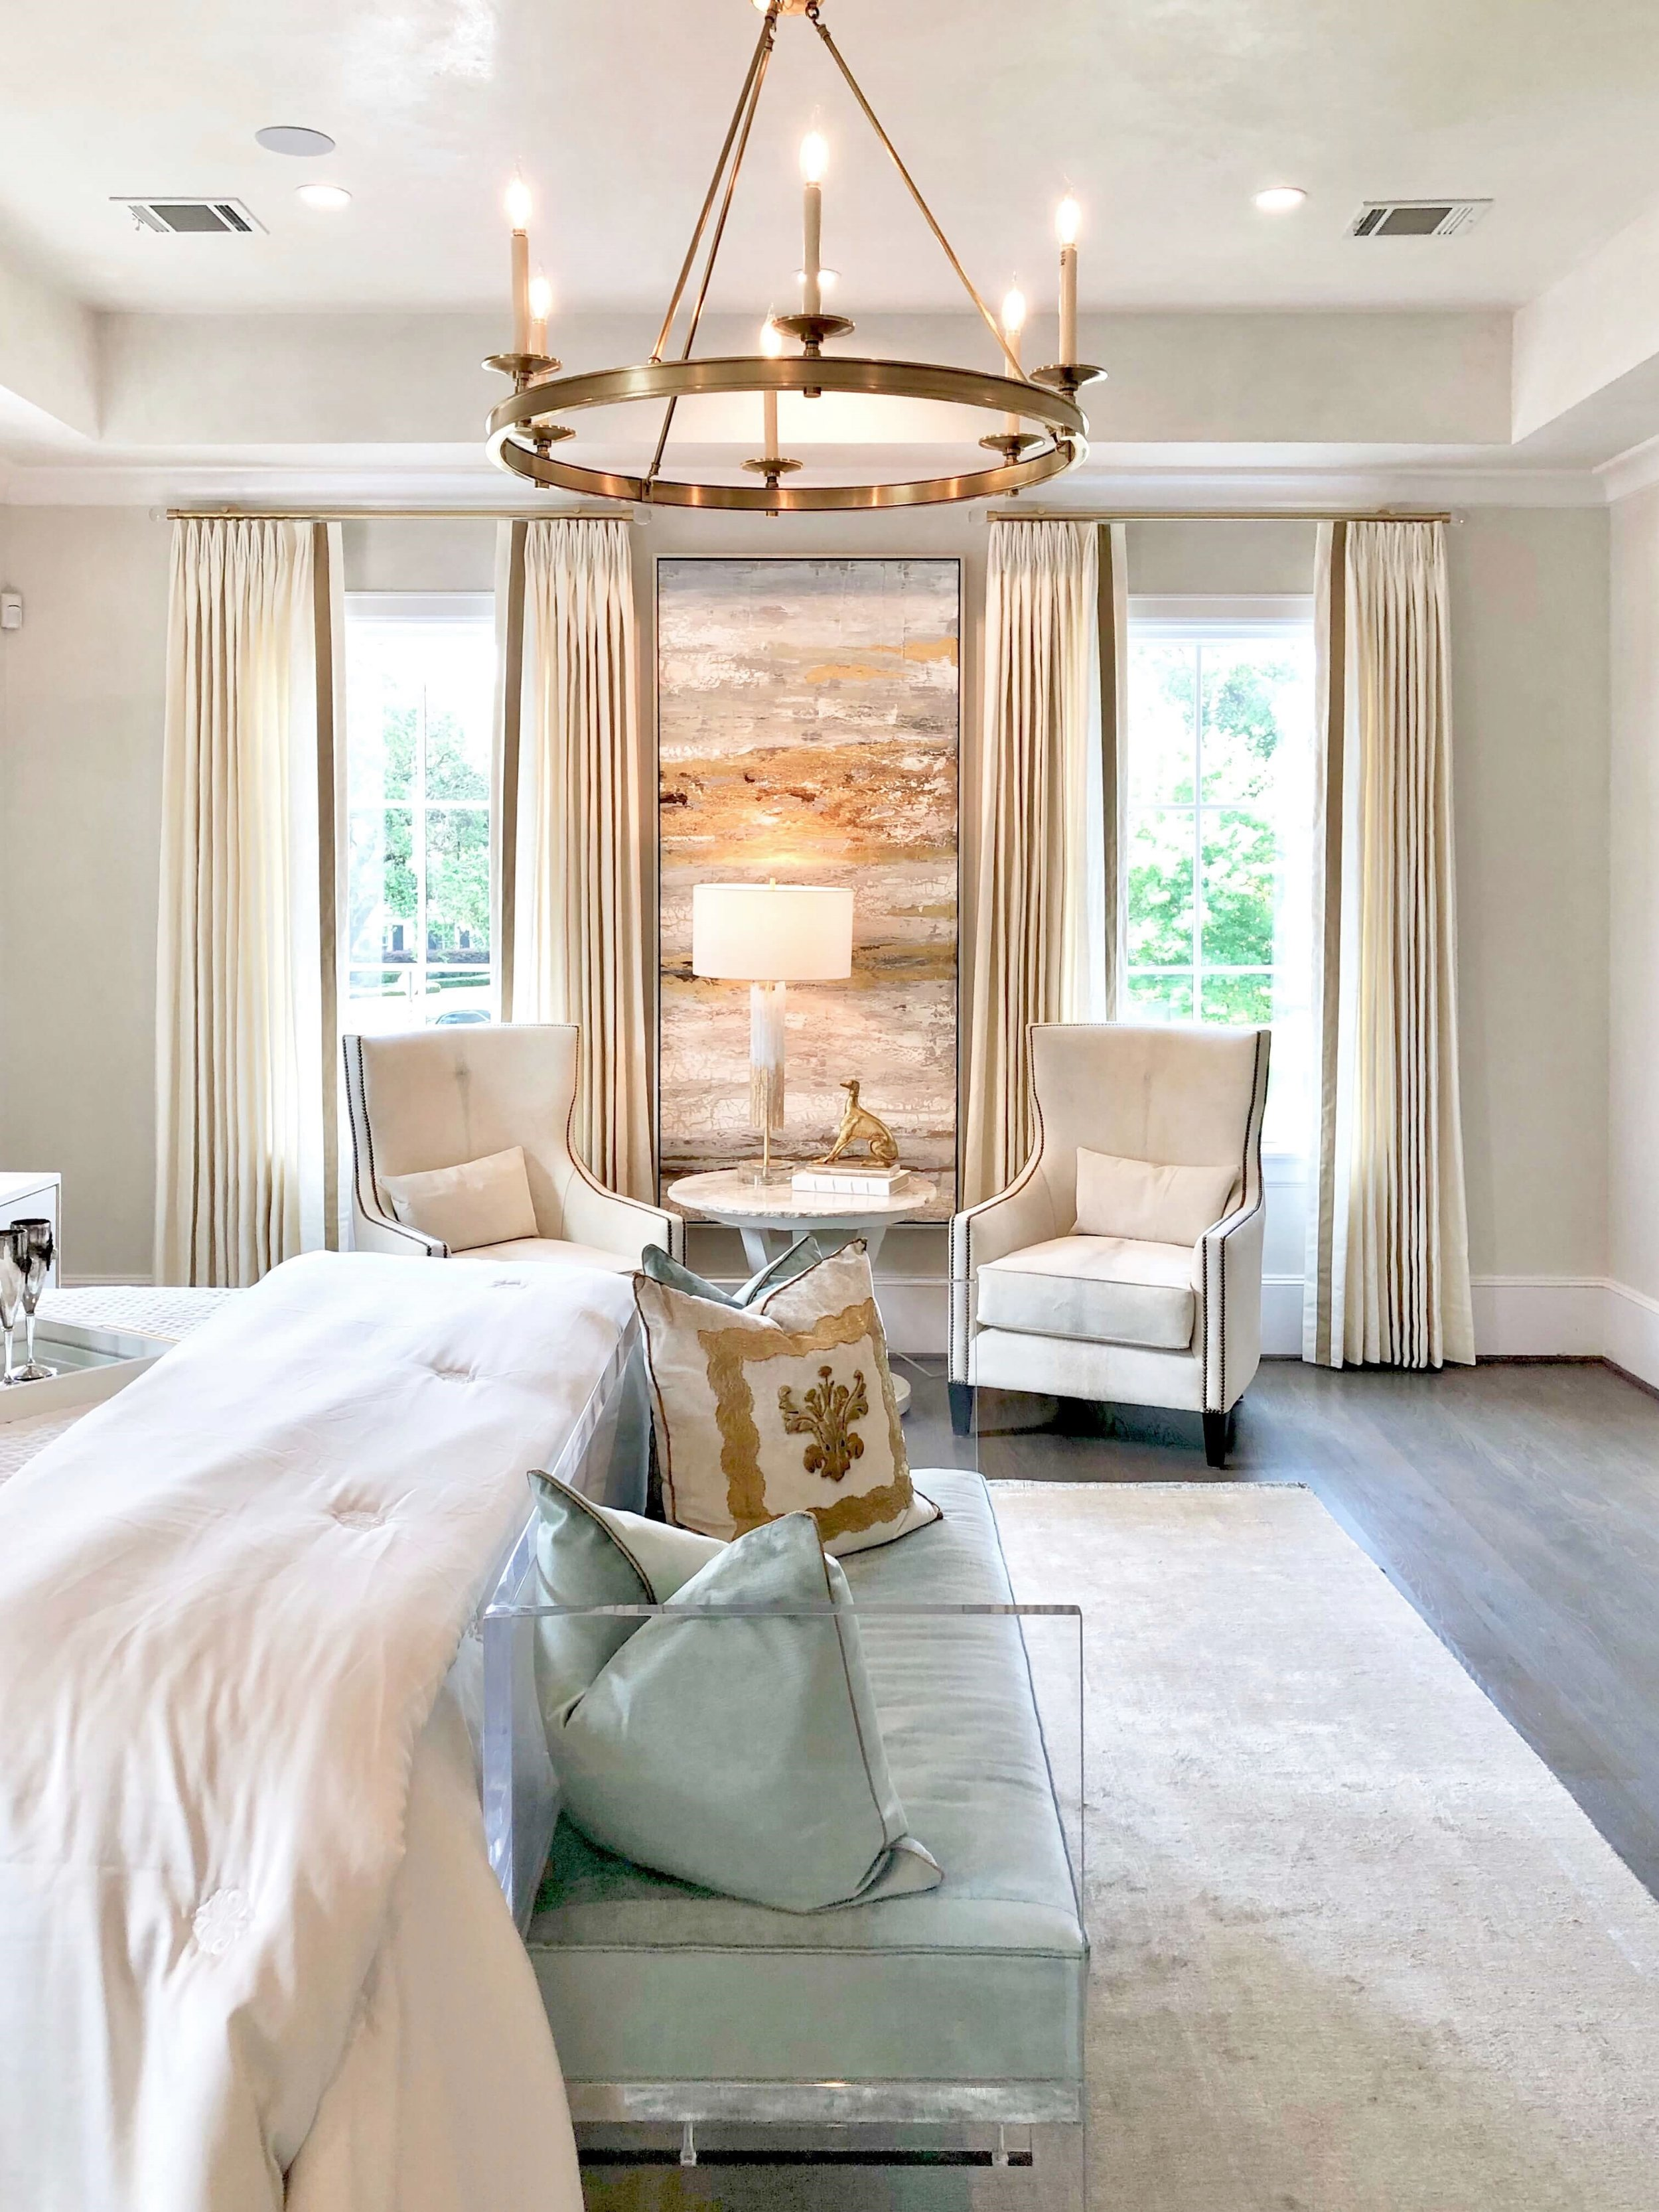 The luxurious master bedroom was designed in soft turquoise and white with plush white bedding by Teena Caldwell of Twenty-Two Fifty Interiors. | ASID River Oaks Showhouse #masterbedroom #whitebedding #bedroomdesign